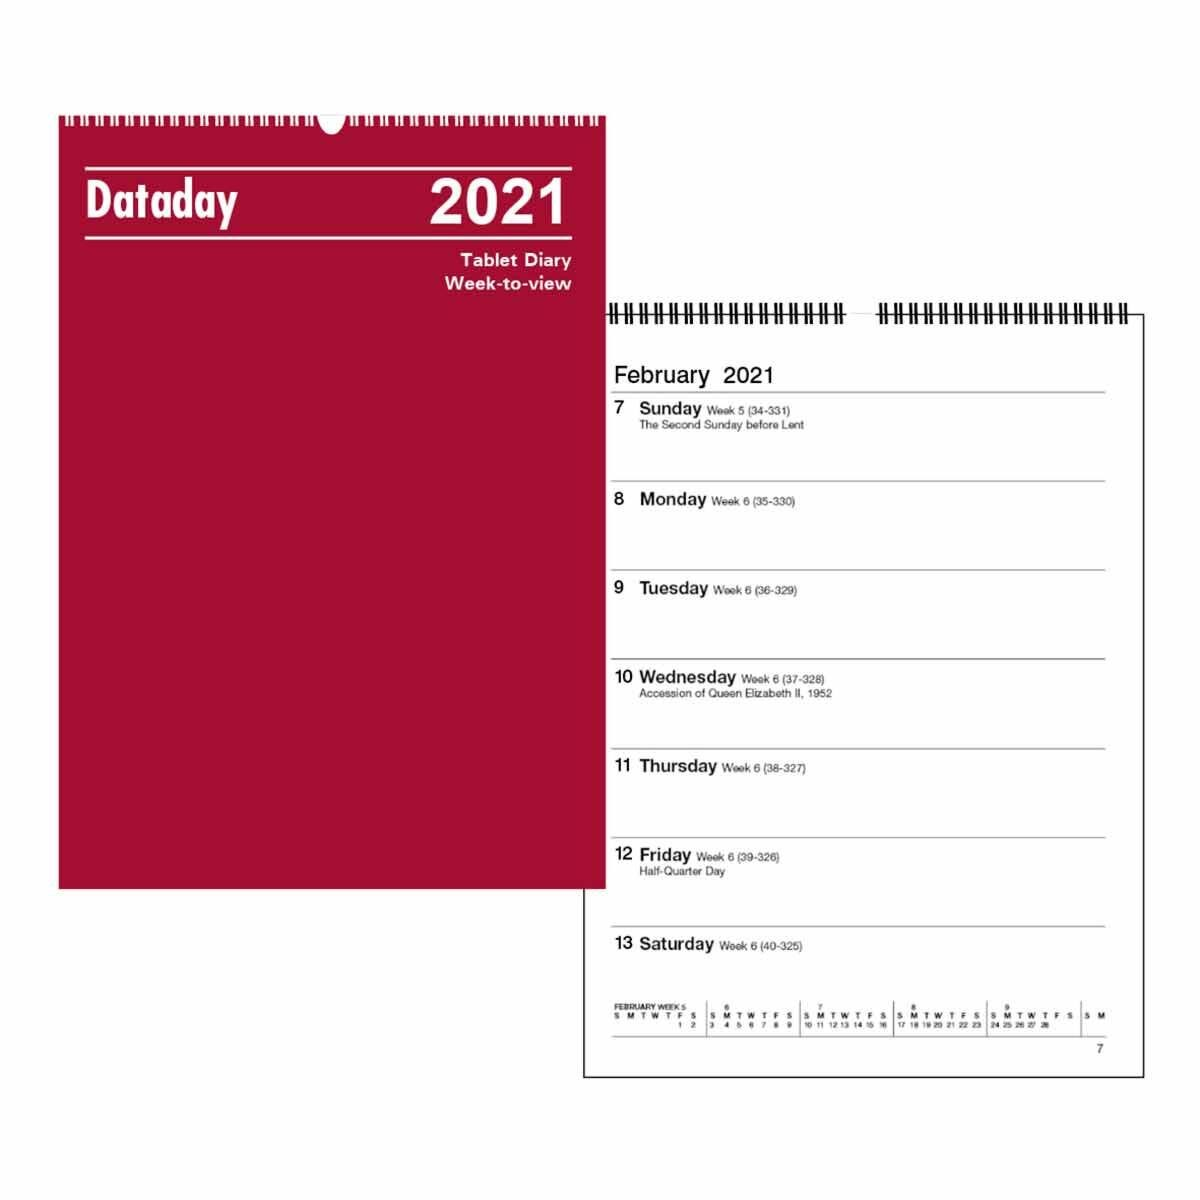 Dataday Week to View Wall Calendar 2021